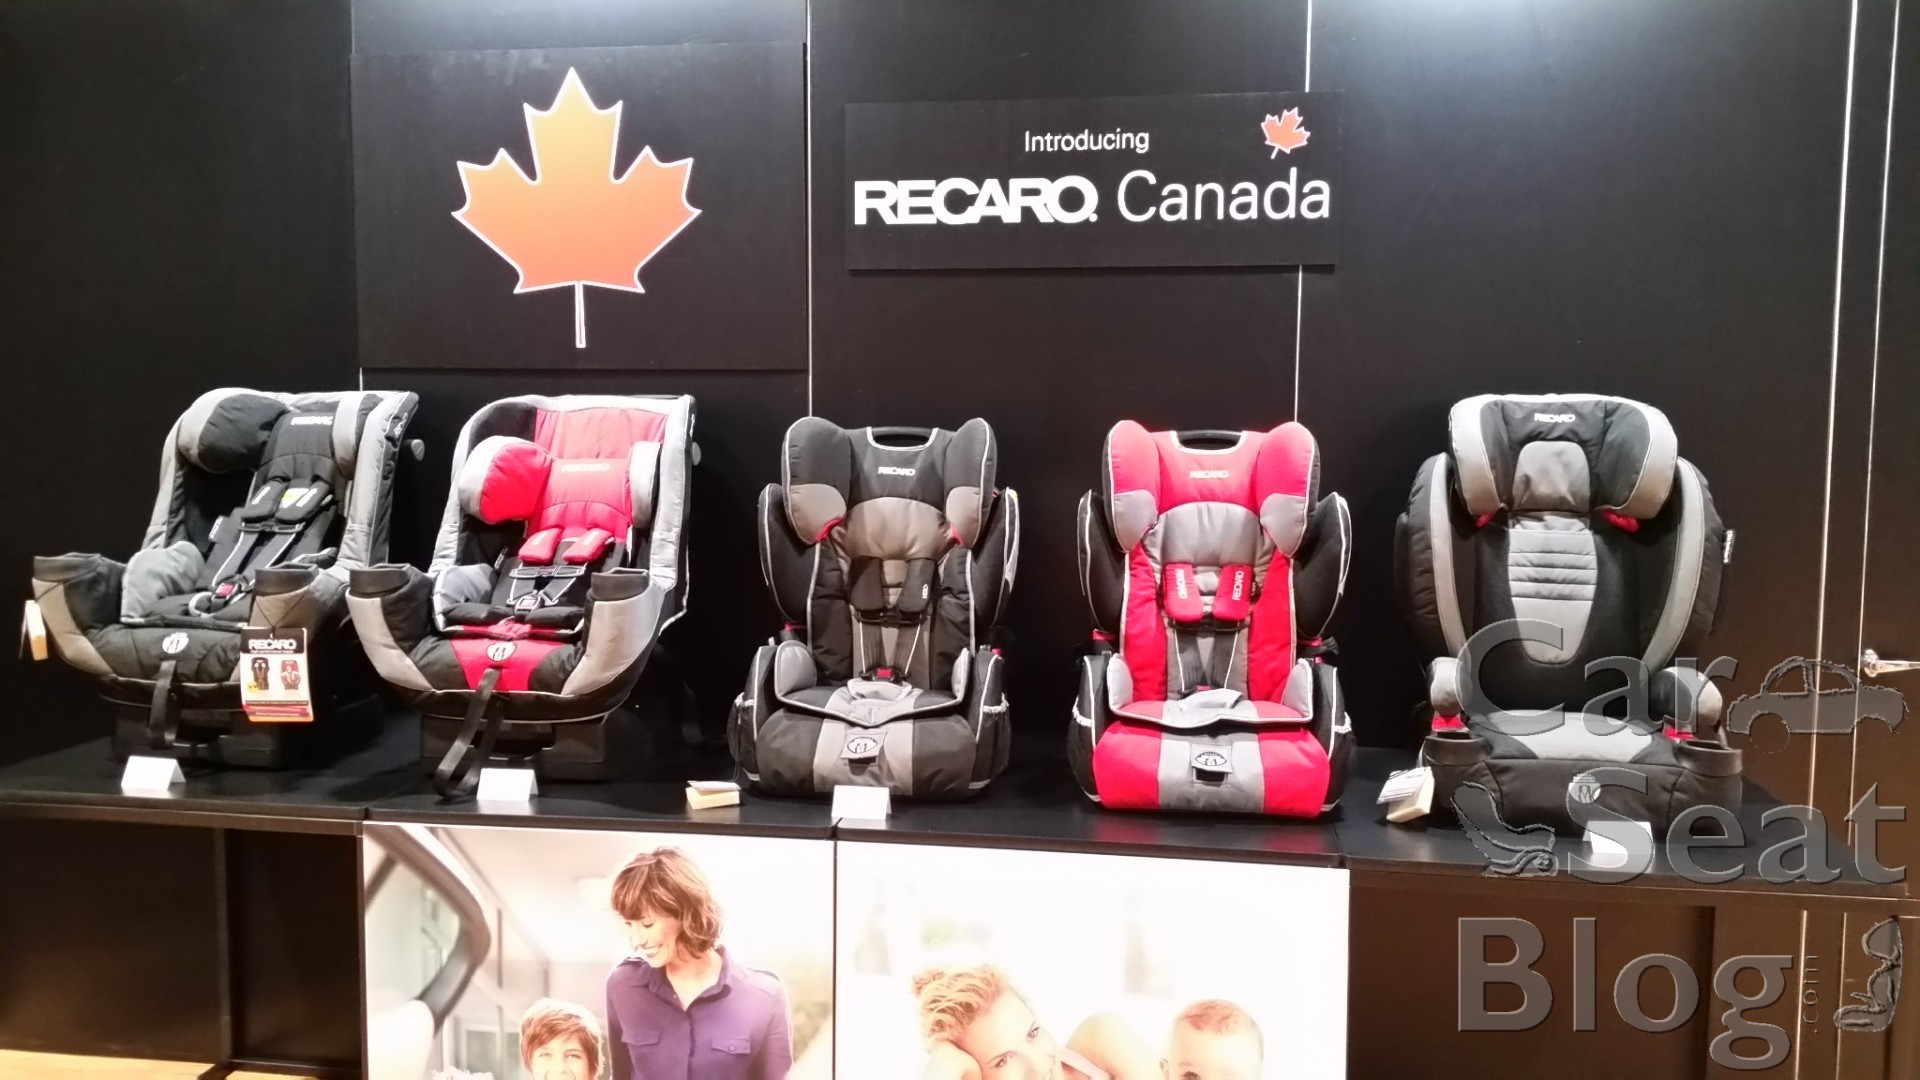 Finally here\u0027s a look at the remarkably ingenious and easy-to-install recall fix for the Recaro Performance RIDE and ProRIDE convertible carseats & CarseatBlog: The Most Trusted Source for Car Seat Reviews Ratings ...